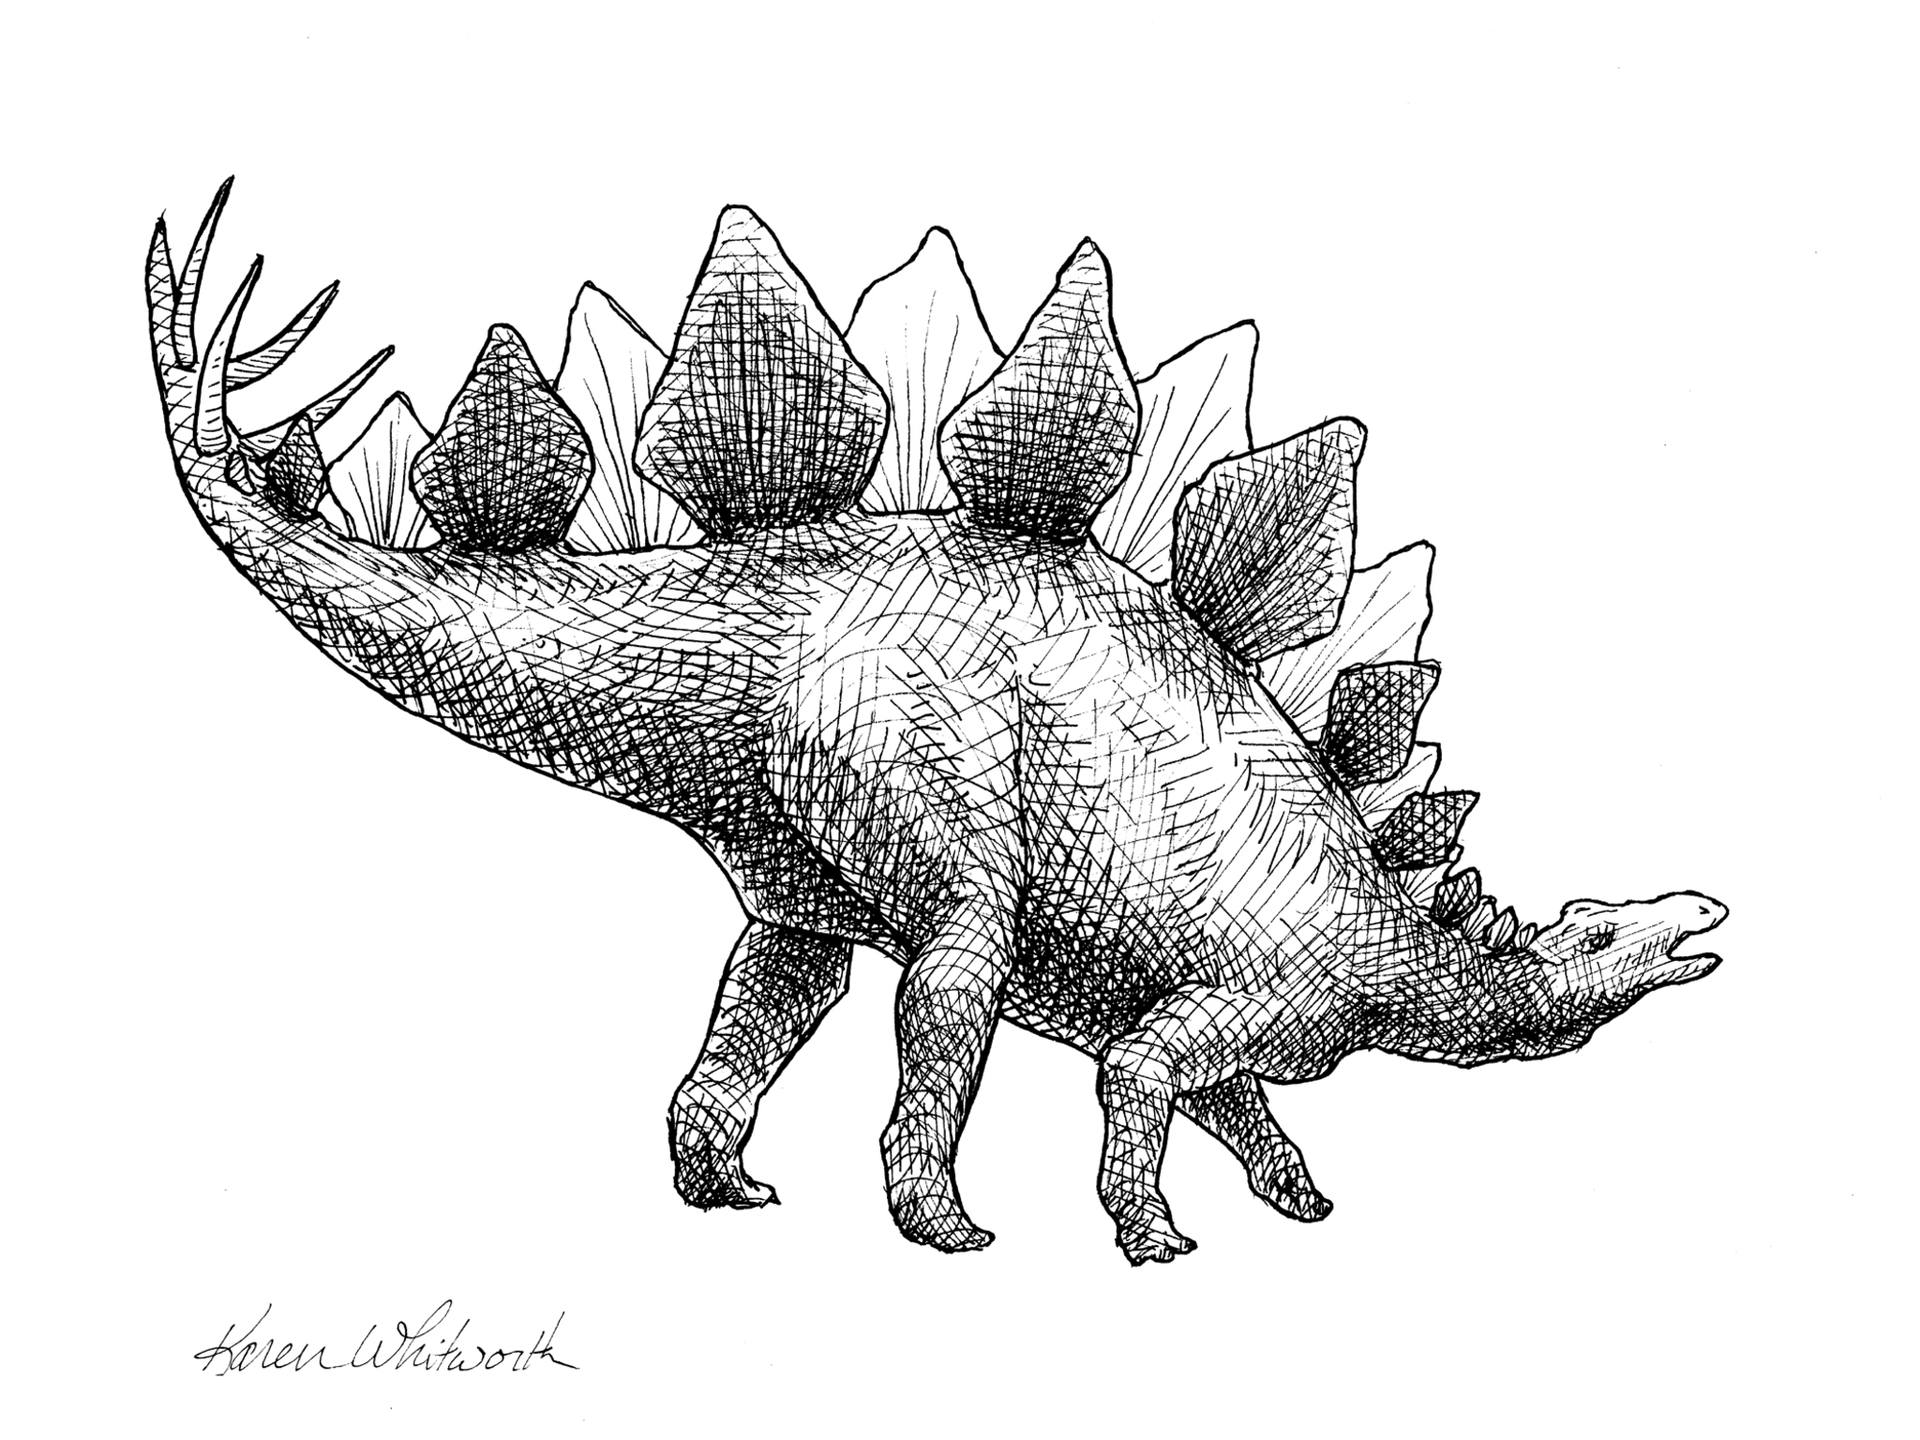 pictures of a stegosaurus new rebor model dinosaur scout series minizoo blog stegosaurus a of pictures